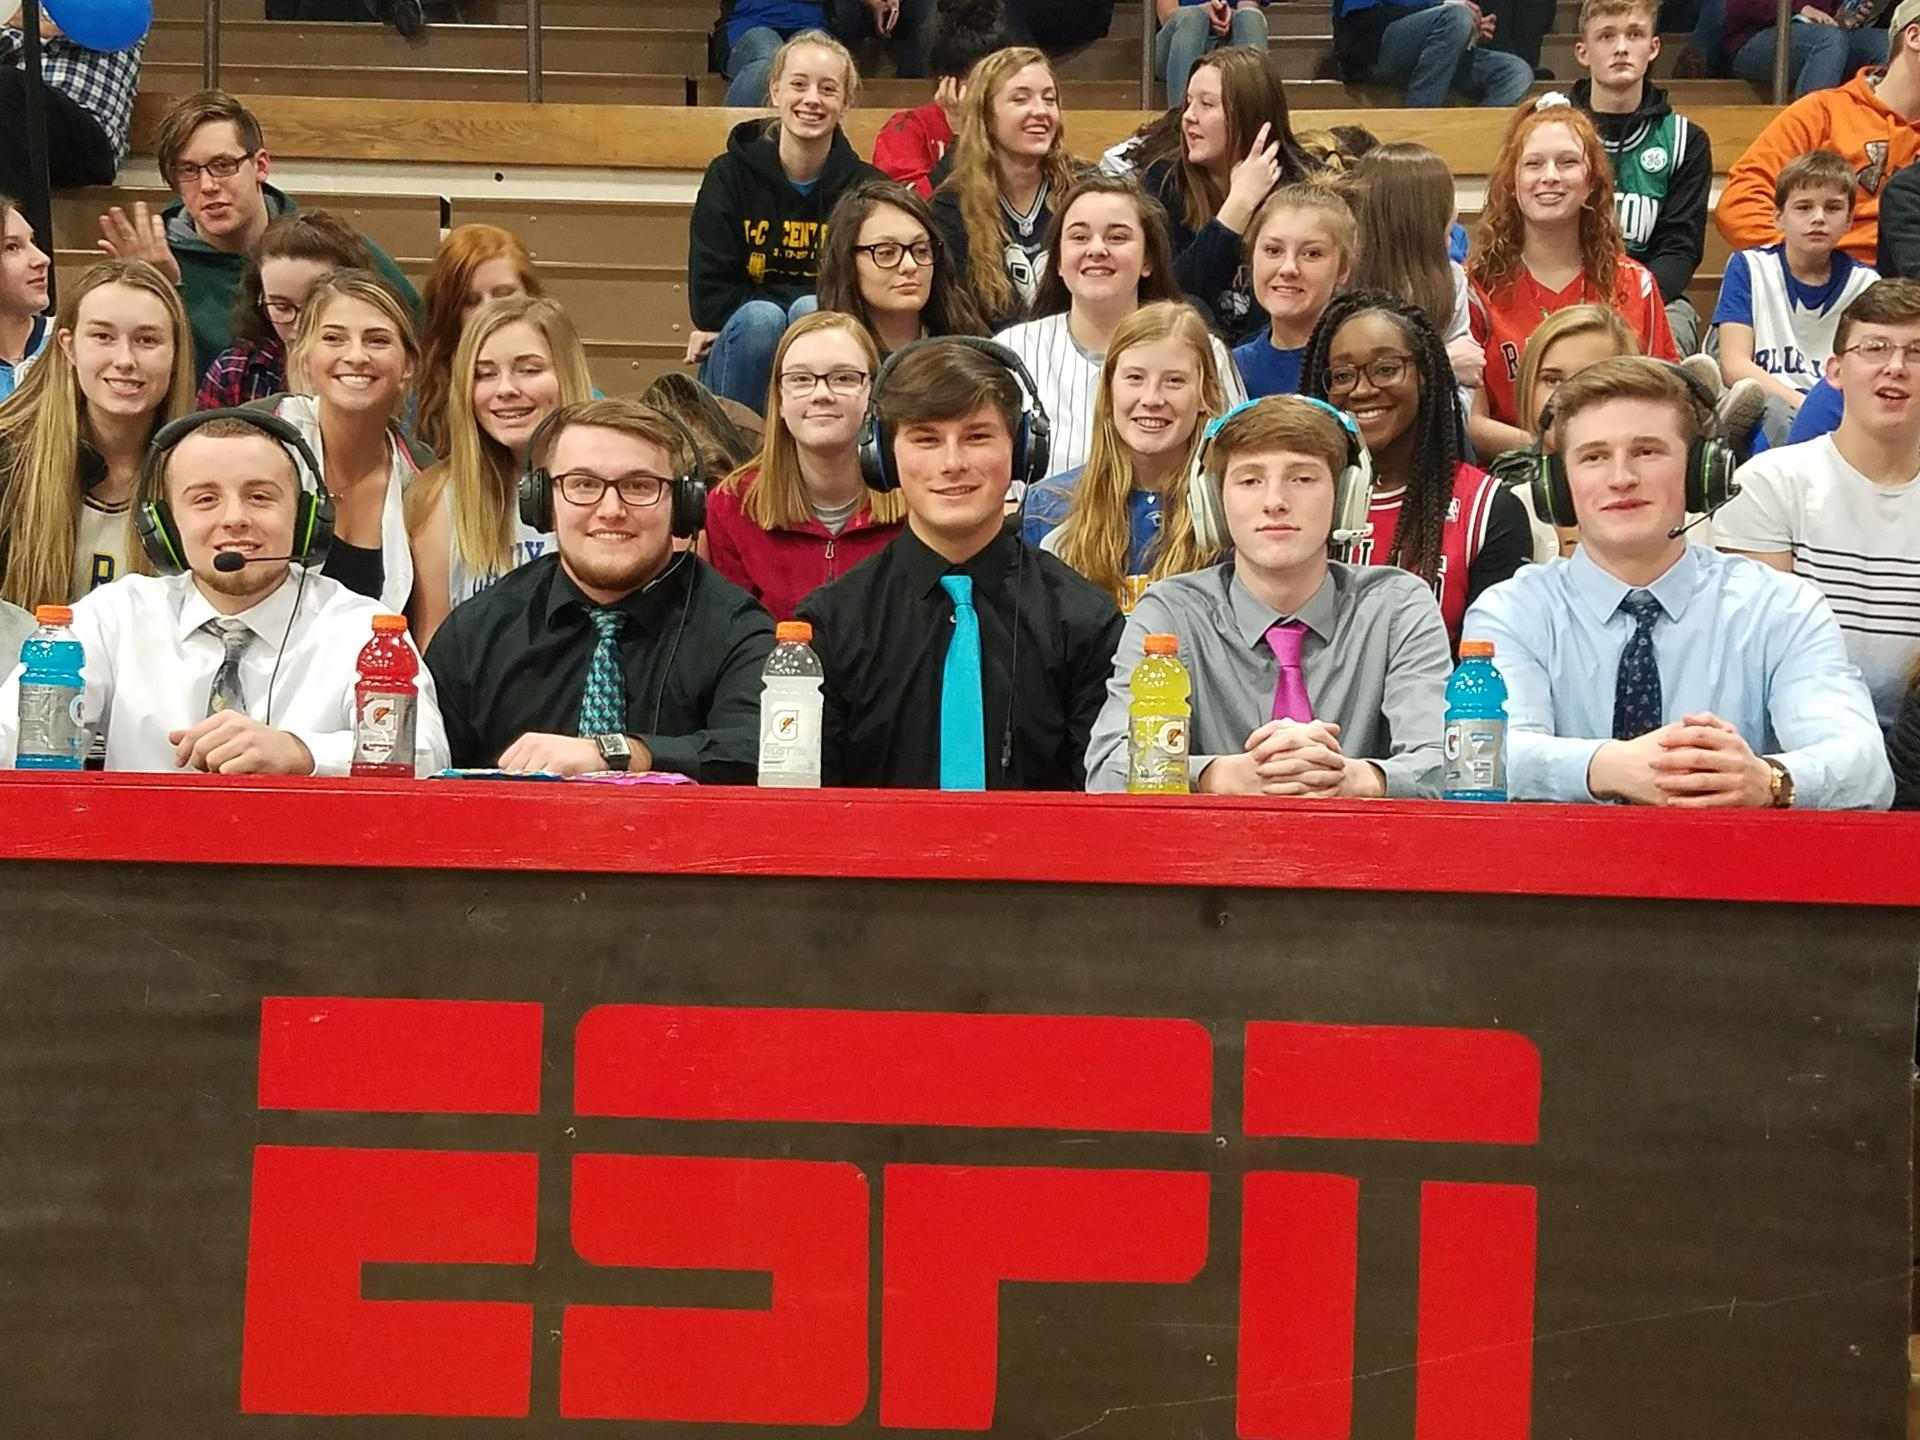 'Broadcast desk' at basketball game